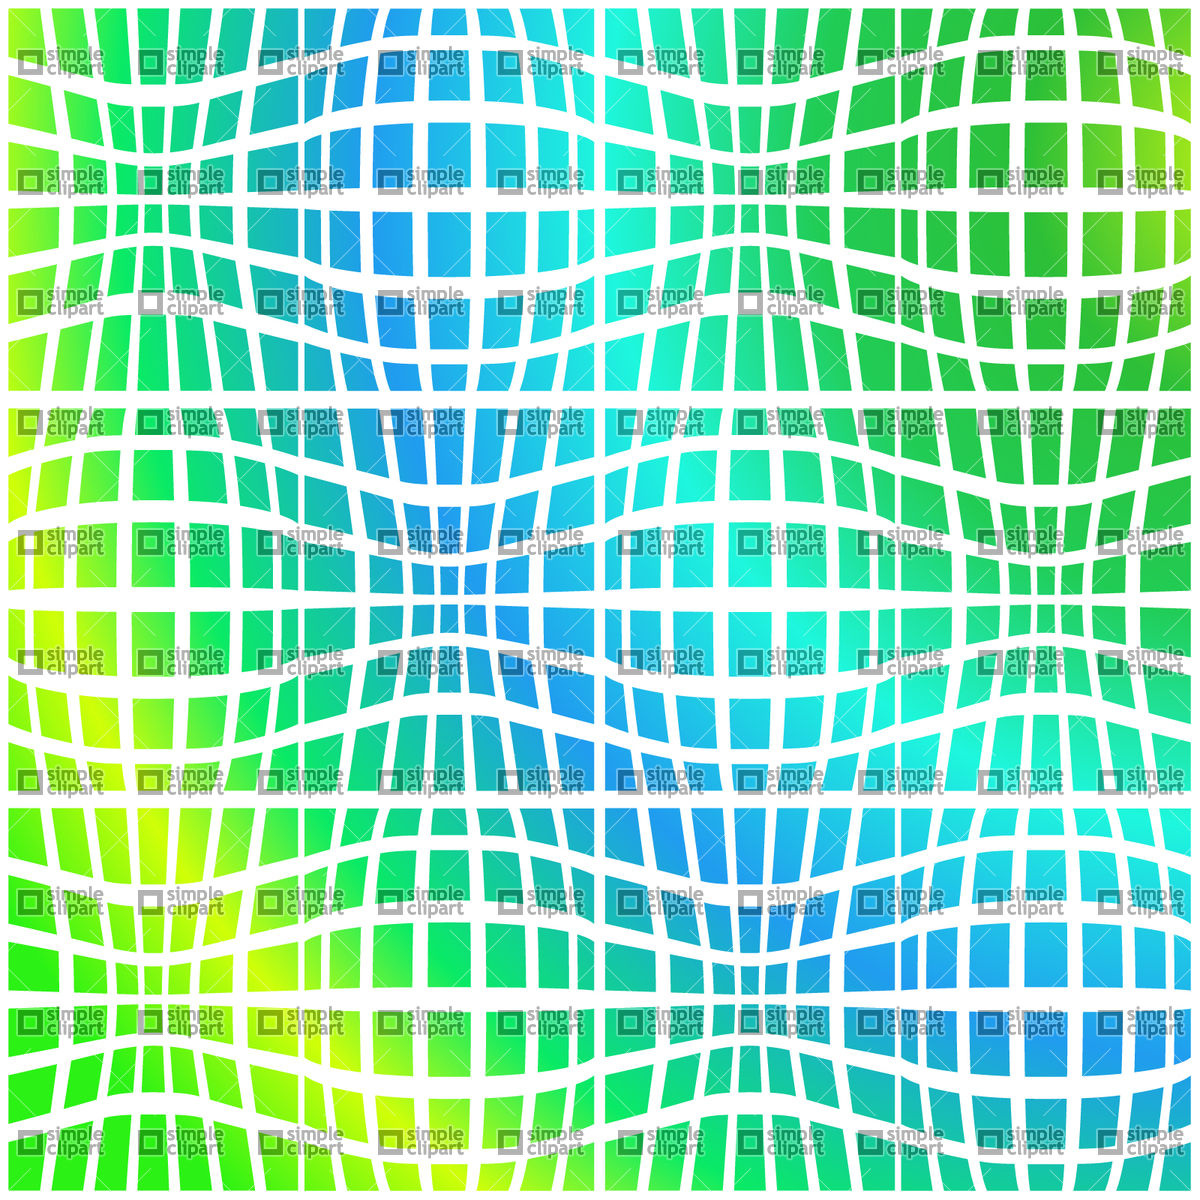 Gradient clipart #9, Download drawings